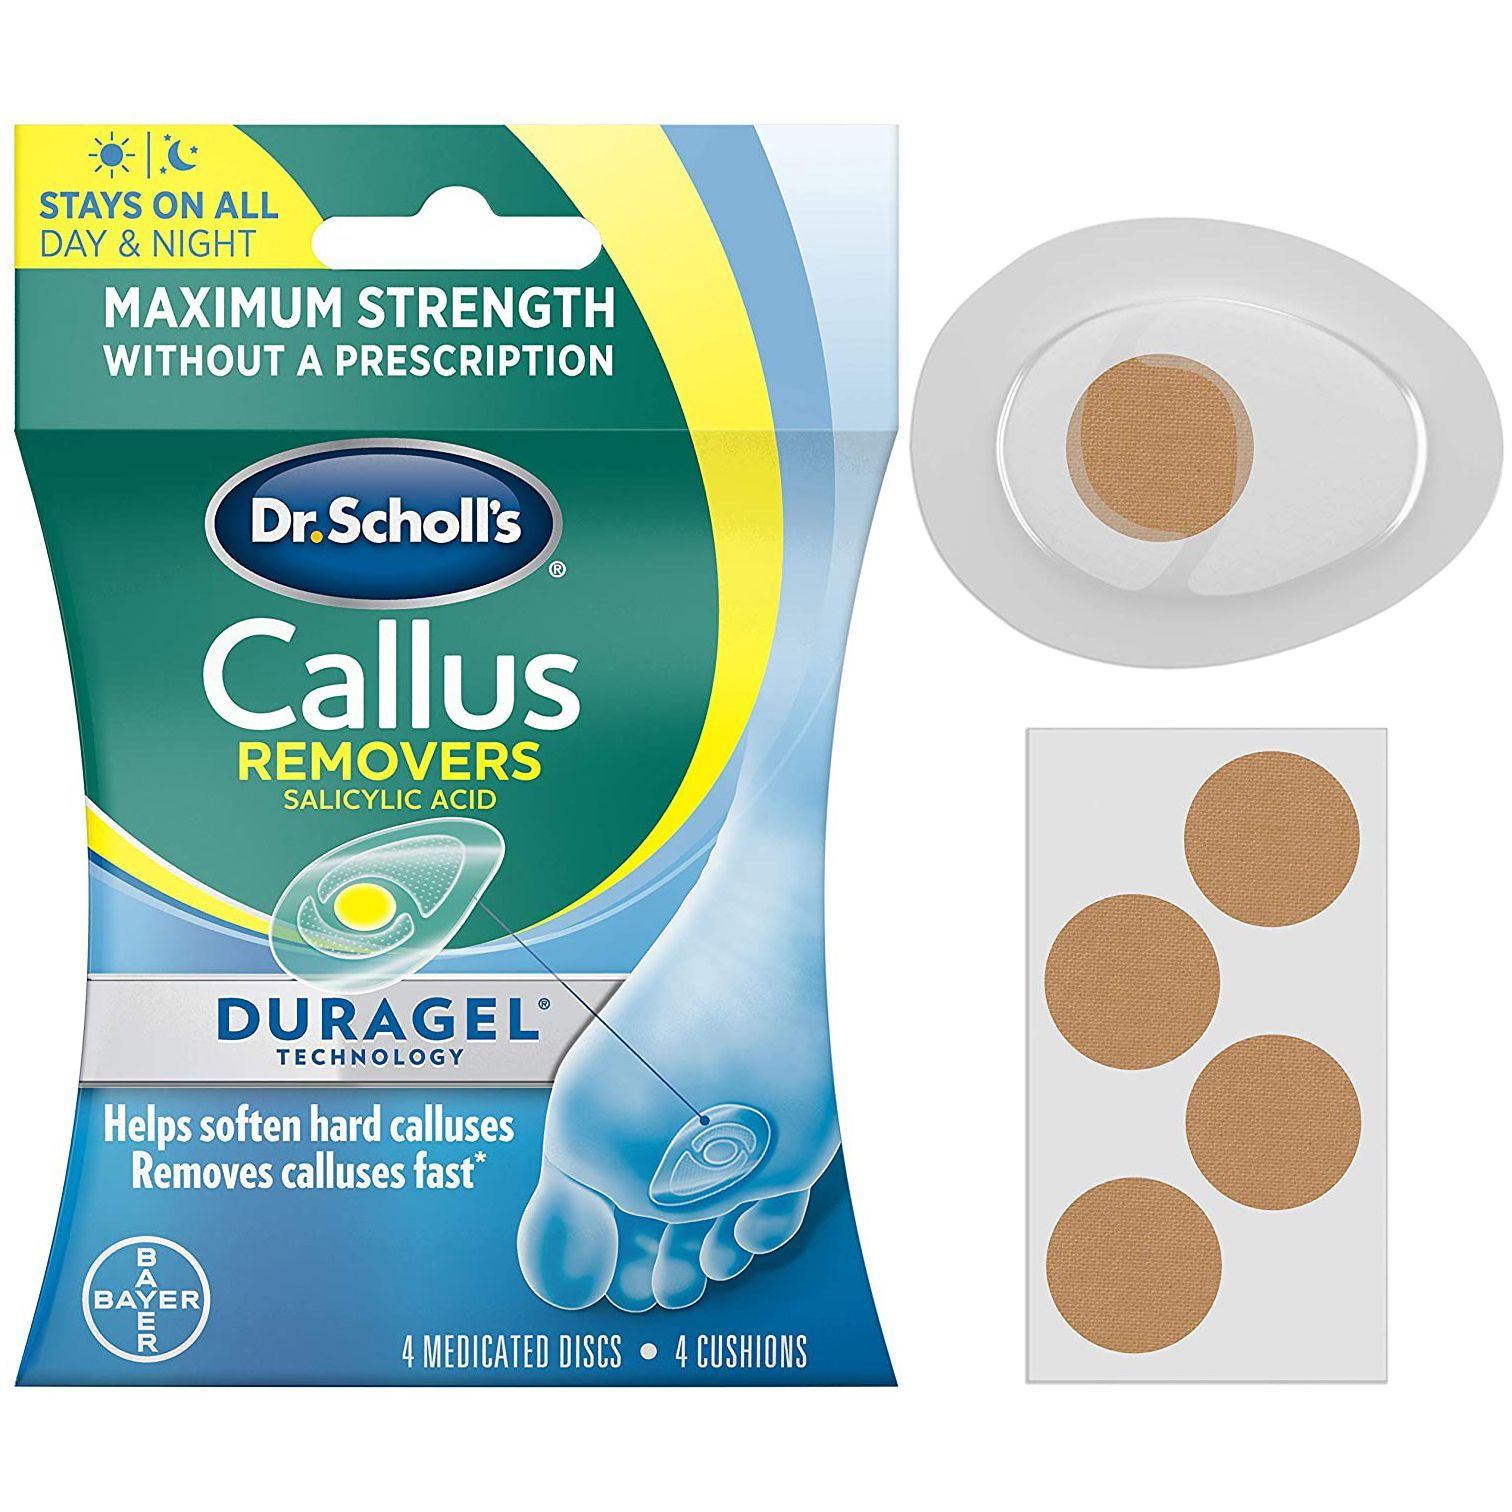 10 Best Callus Removers Of 2020 Top Callus Removing Gels And Tools